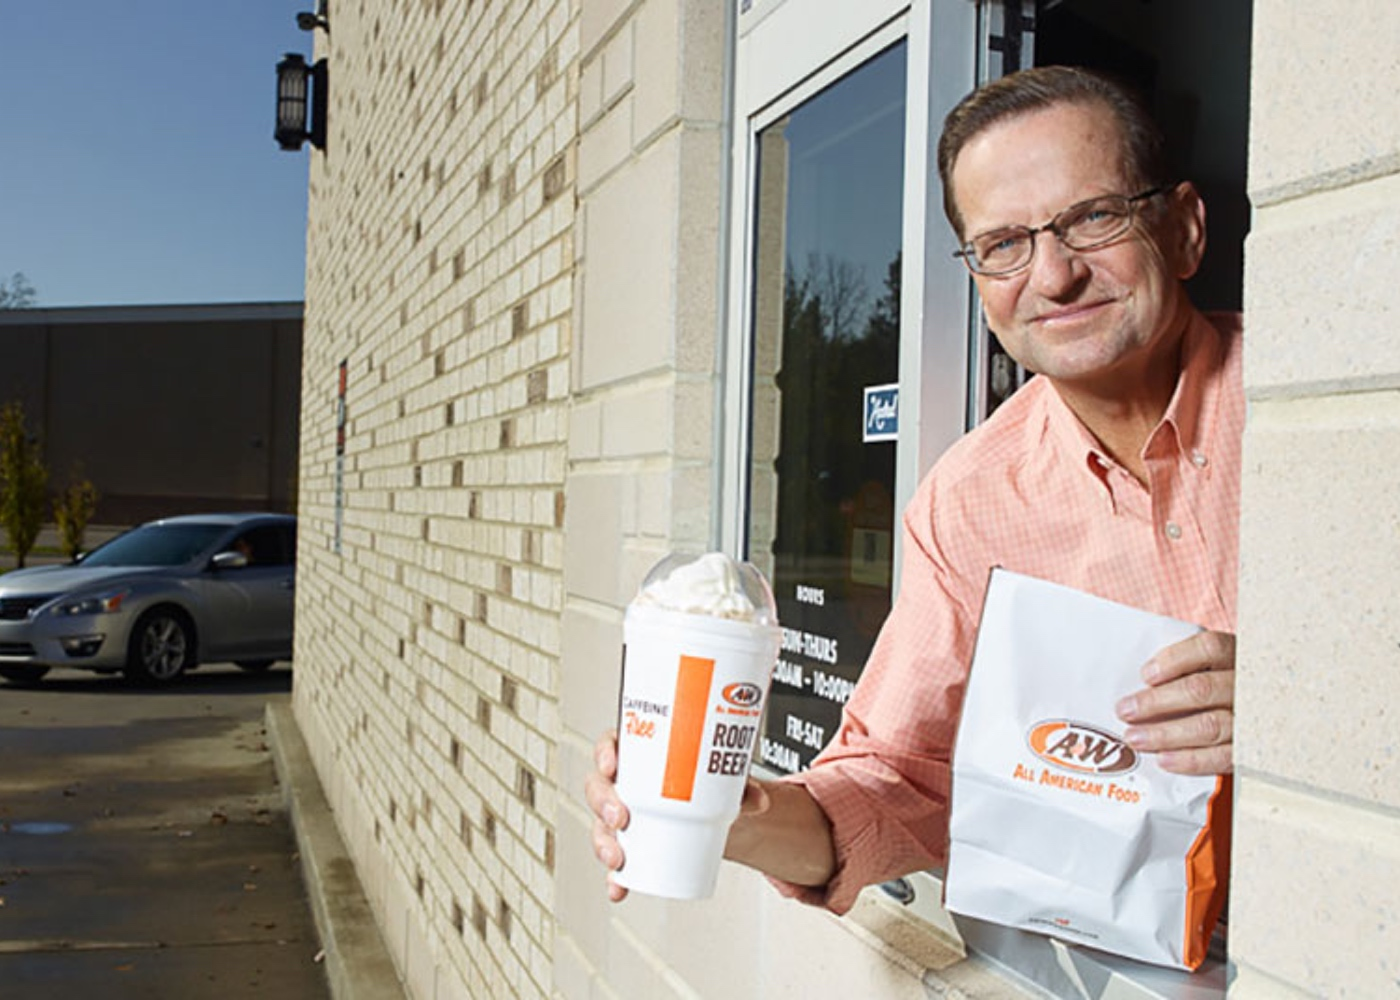 Photo of Kevin Bazner in drive-thru holding Root Beer Float and A&W to-go bag